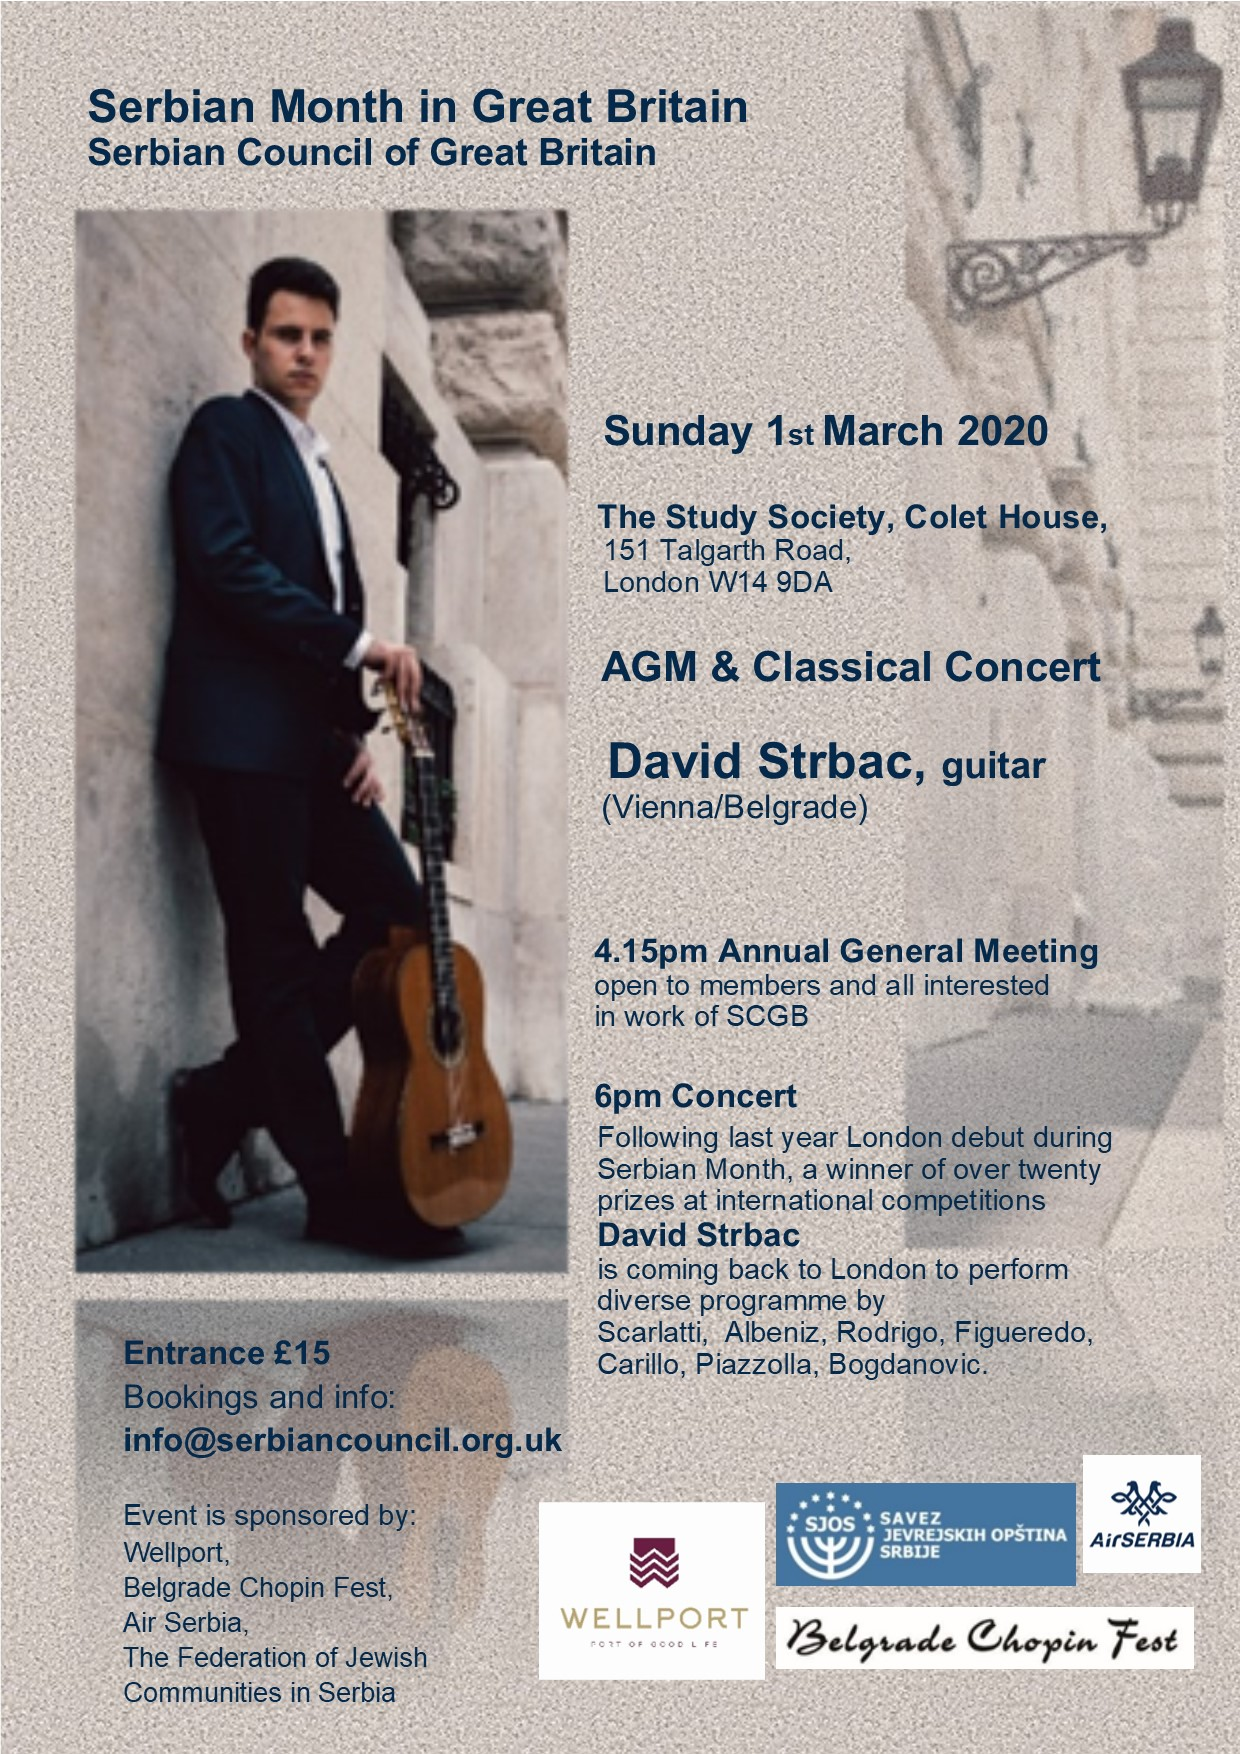 Serbian Council of Great Britain AGM followed by Concert